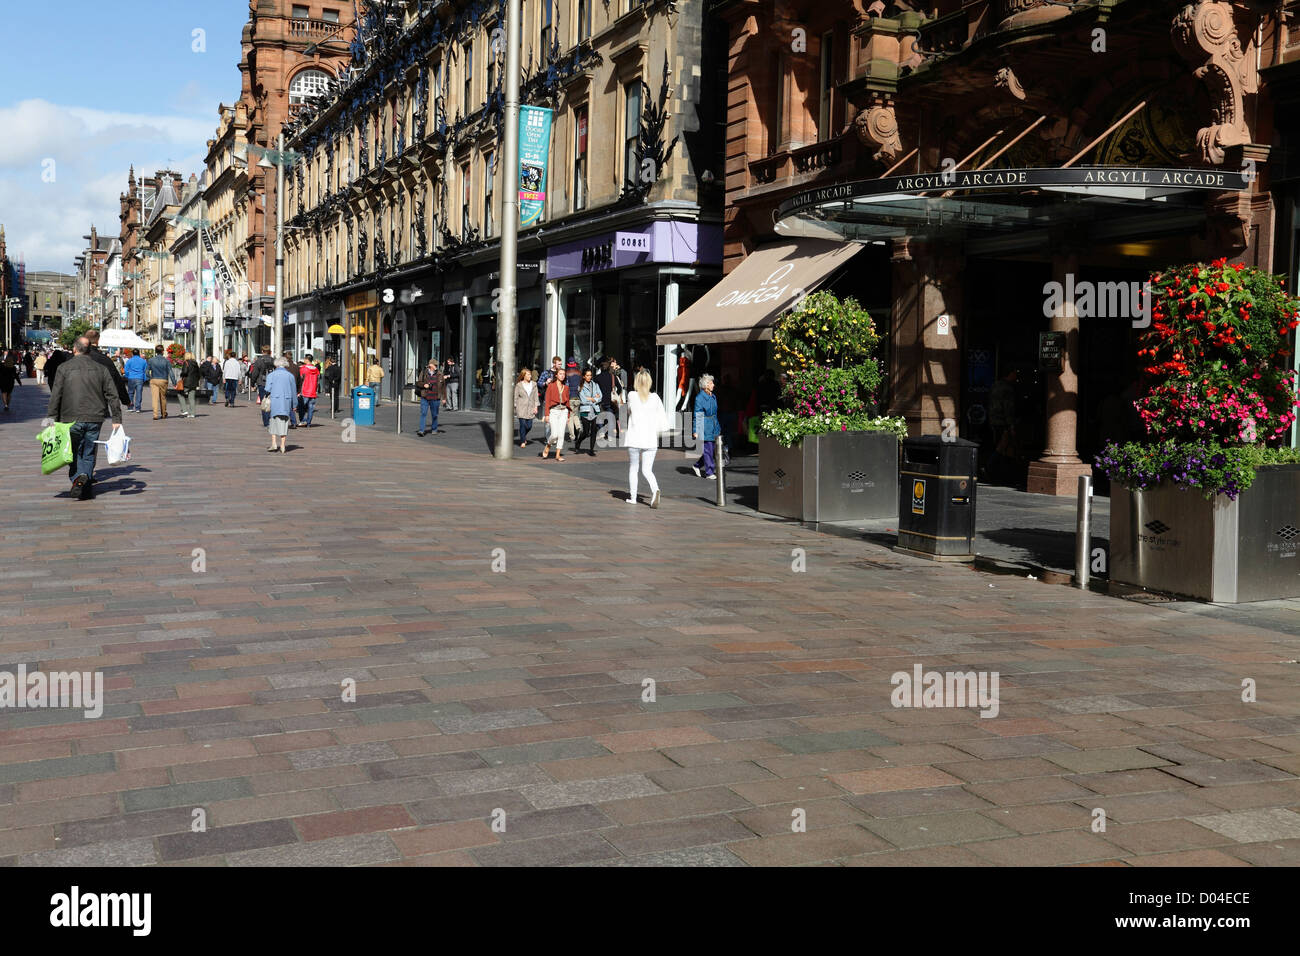 Buchanan Street pedestrian precinct in Glasgow city centre, Scotland, UK - Stock Image